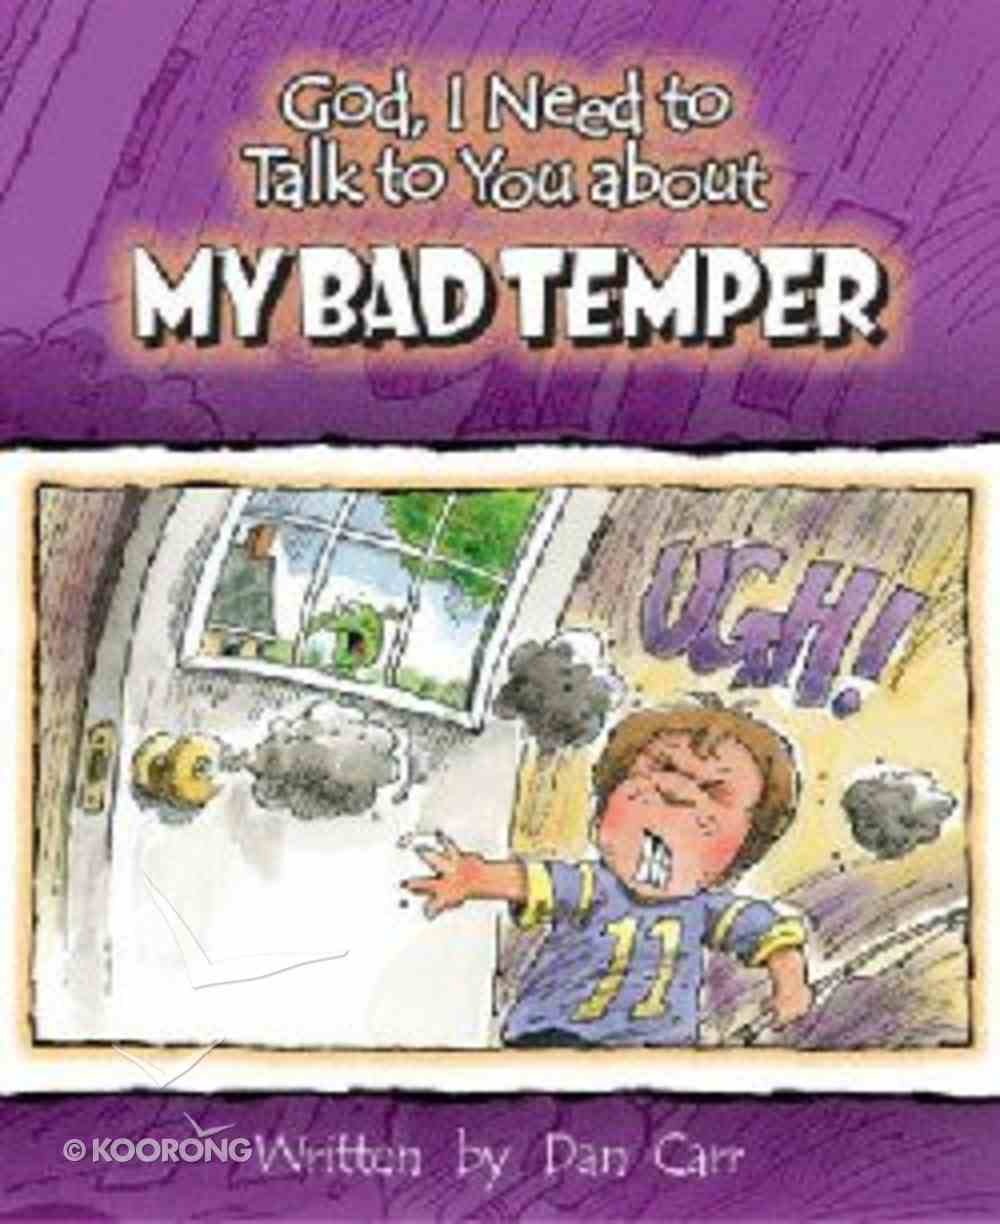 My Bad Temper (God, I Need To Talk To You About Series) Paperback